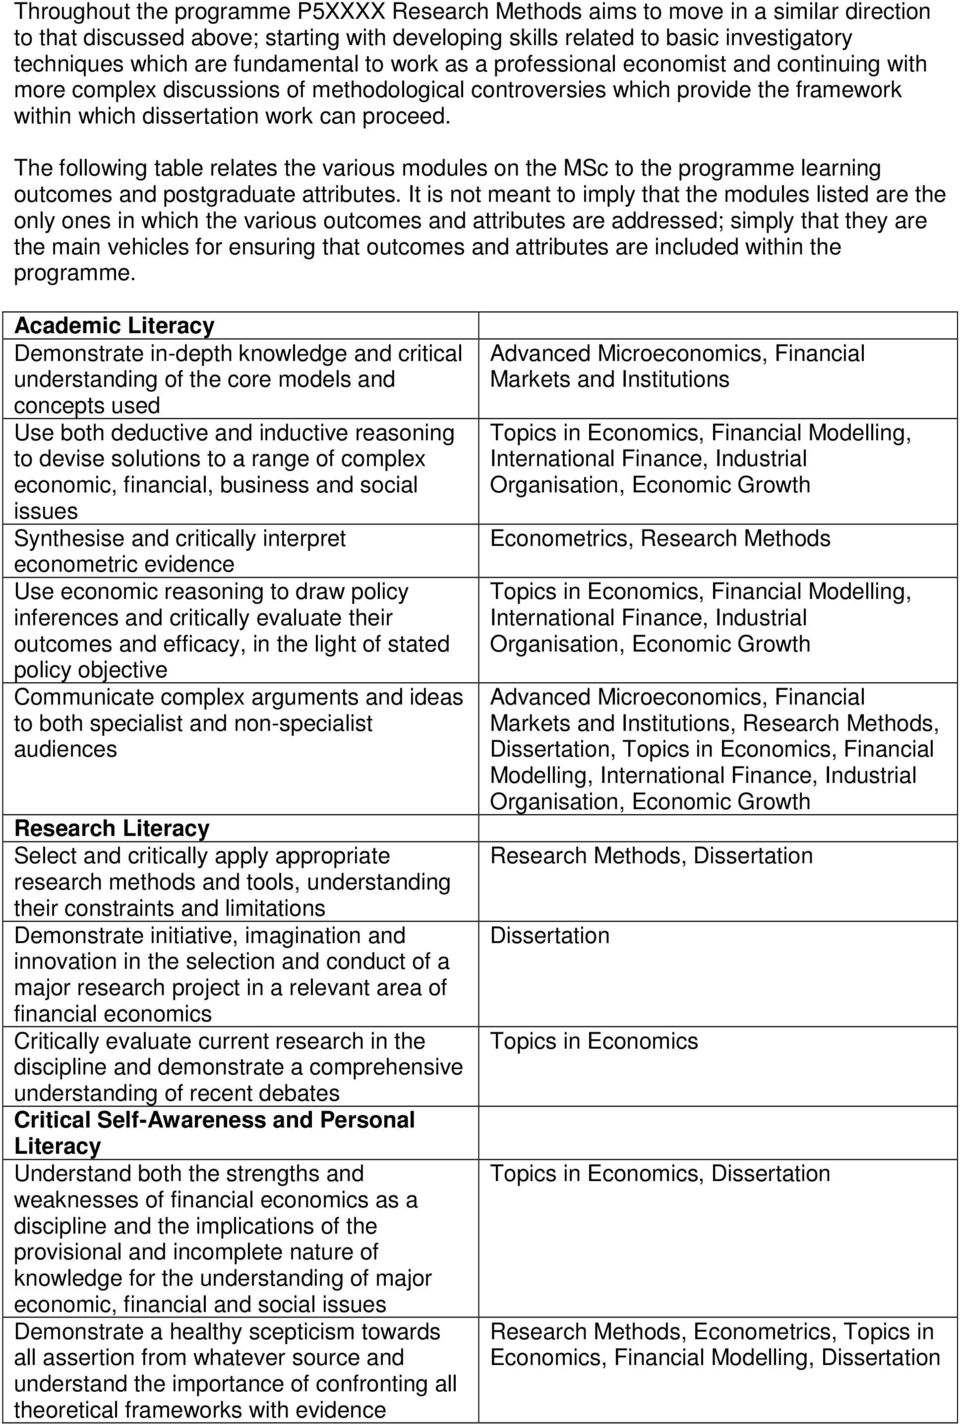 The following table relates the various modules on the MSc to the programme learning outcomes and postgraduate attributes.